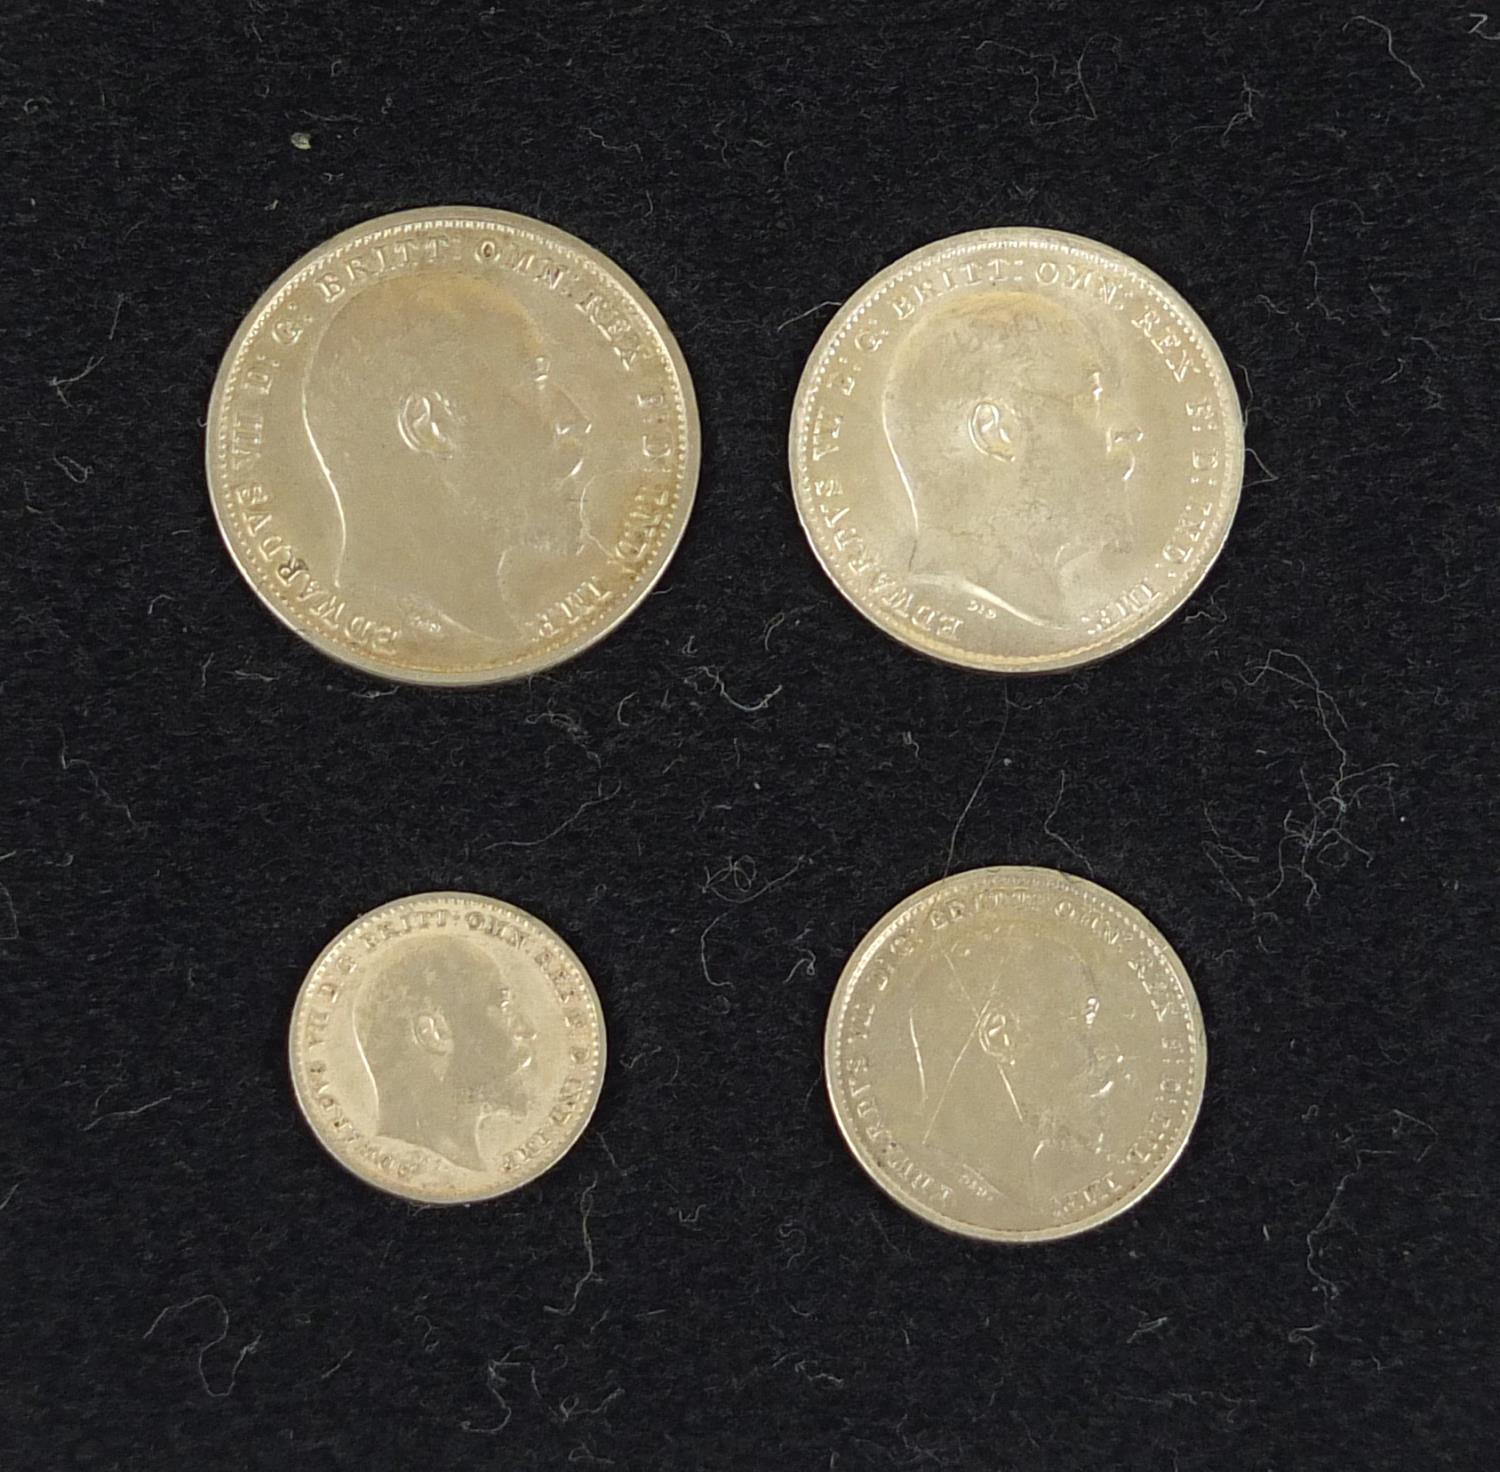 Edward VII 1902 Maundy Coin set with fitted case - Image 3 of 4